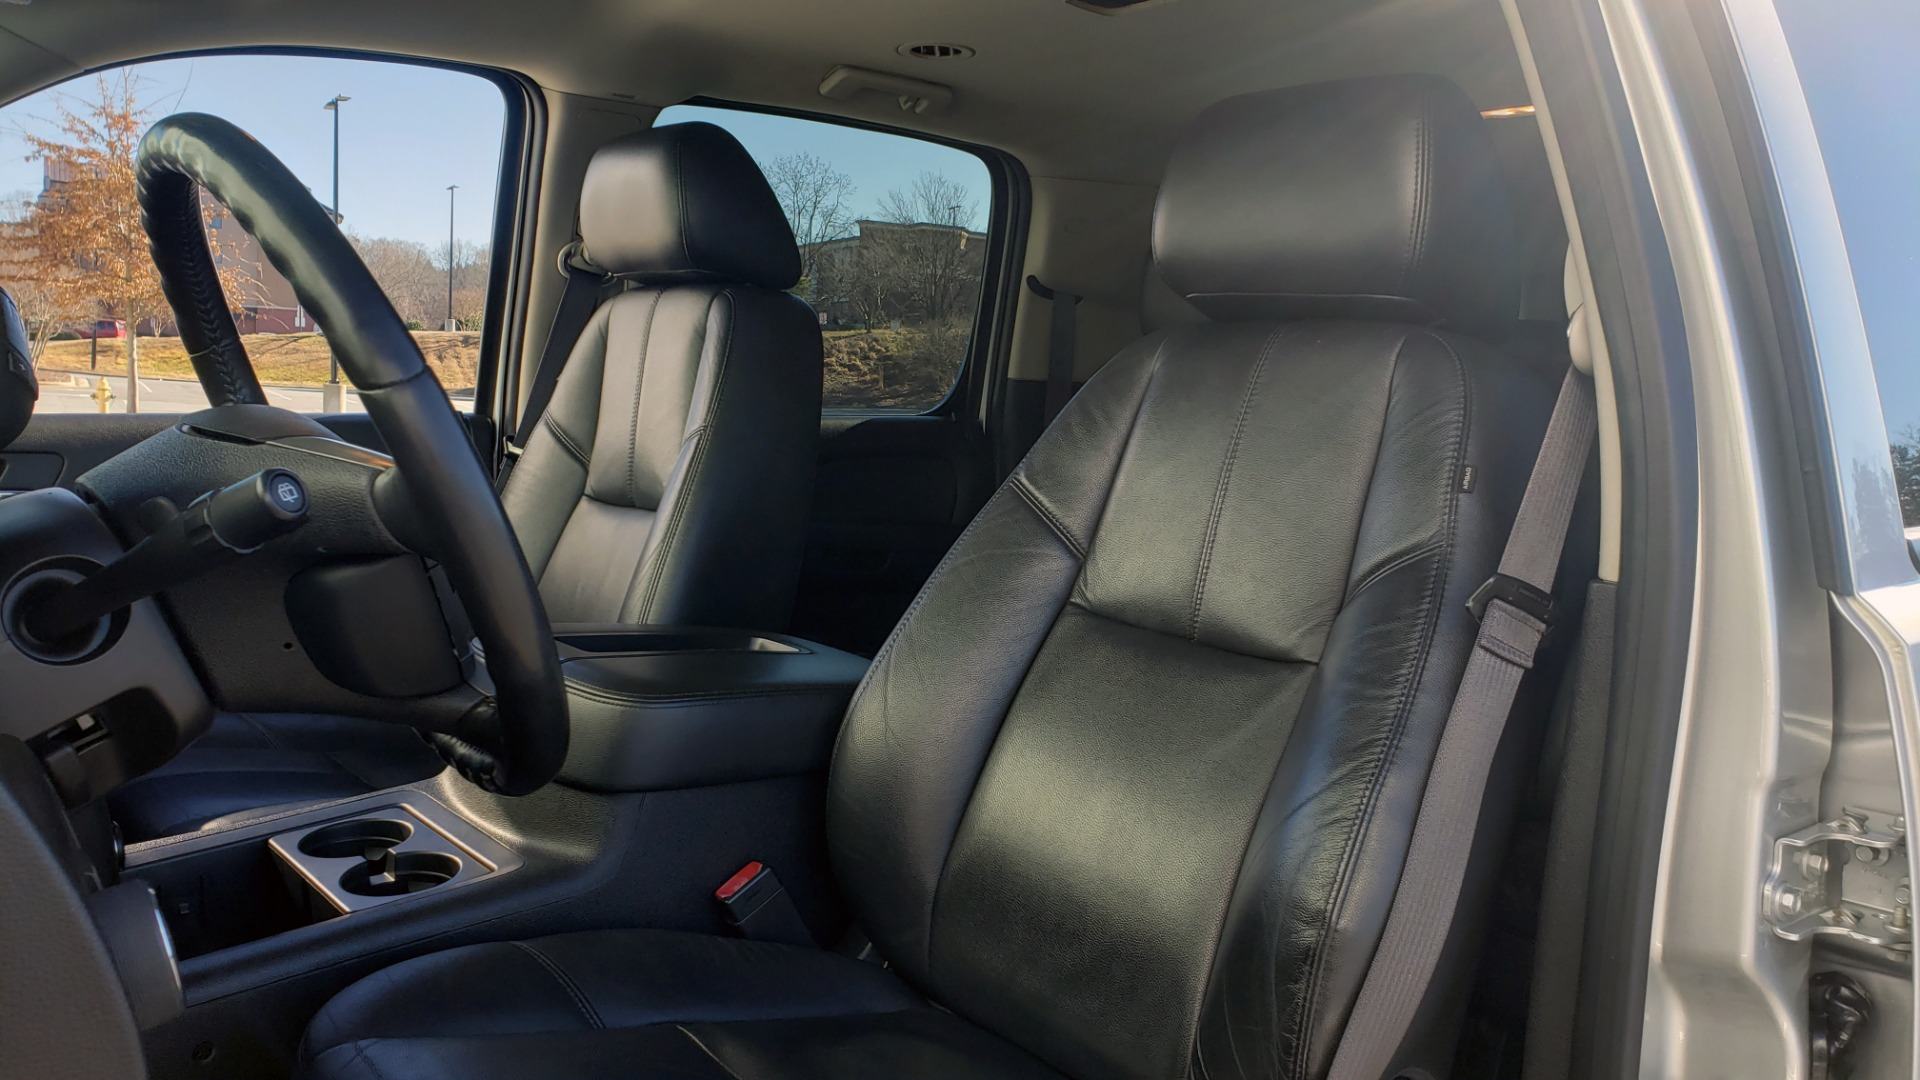 Used 2013 Chevrolet SUBURBAN LT / 2WD / 5.3L V8 / 6-SPD AUTO / LEATHER 3-ROW SEATS for sale Sold at Formula Imports in Charlotte NC 28227 37